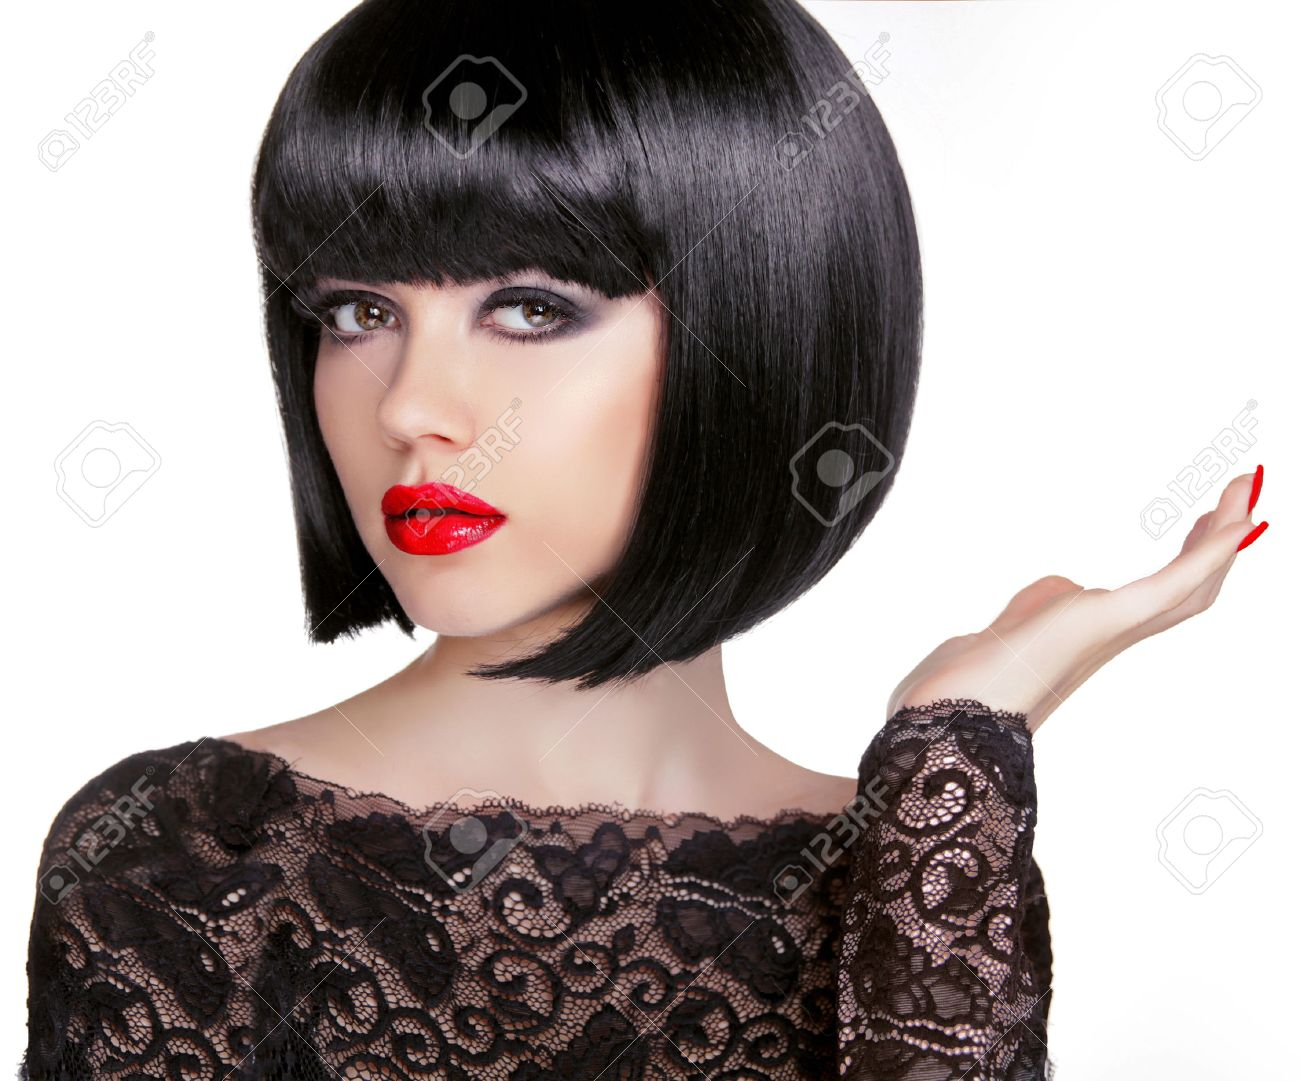 Bob Hairstyle Brunette Fashion Model With Black Short Hair And Red